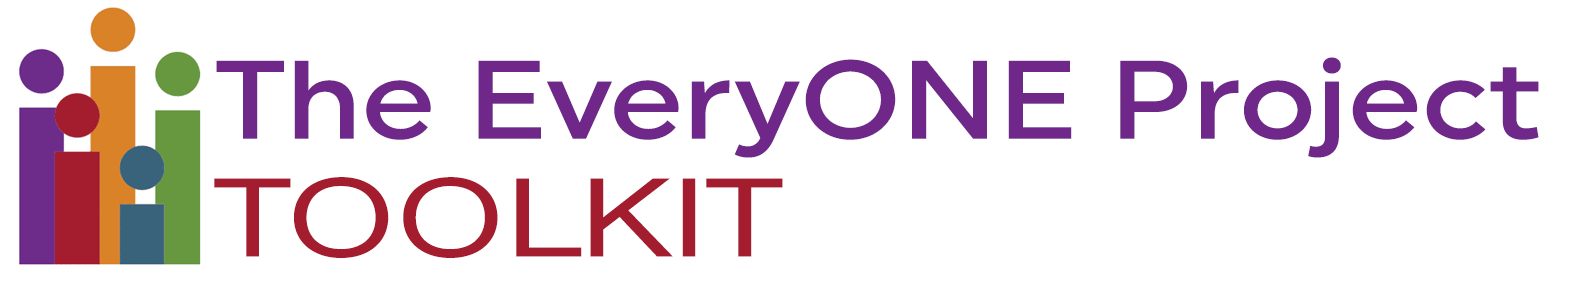 The Everyone Project Toolkit